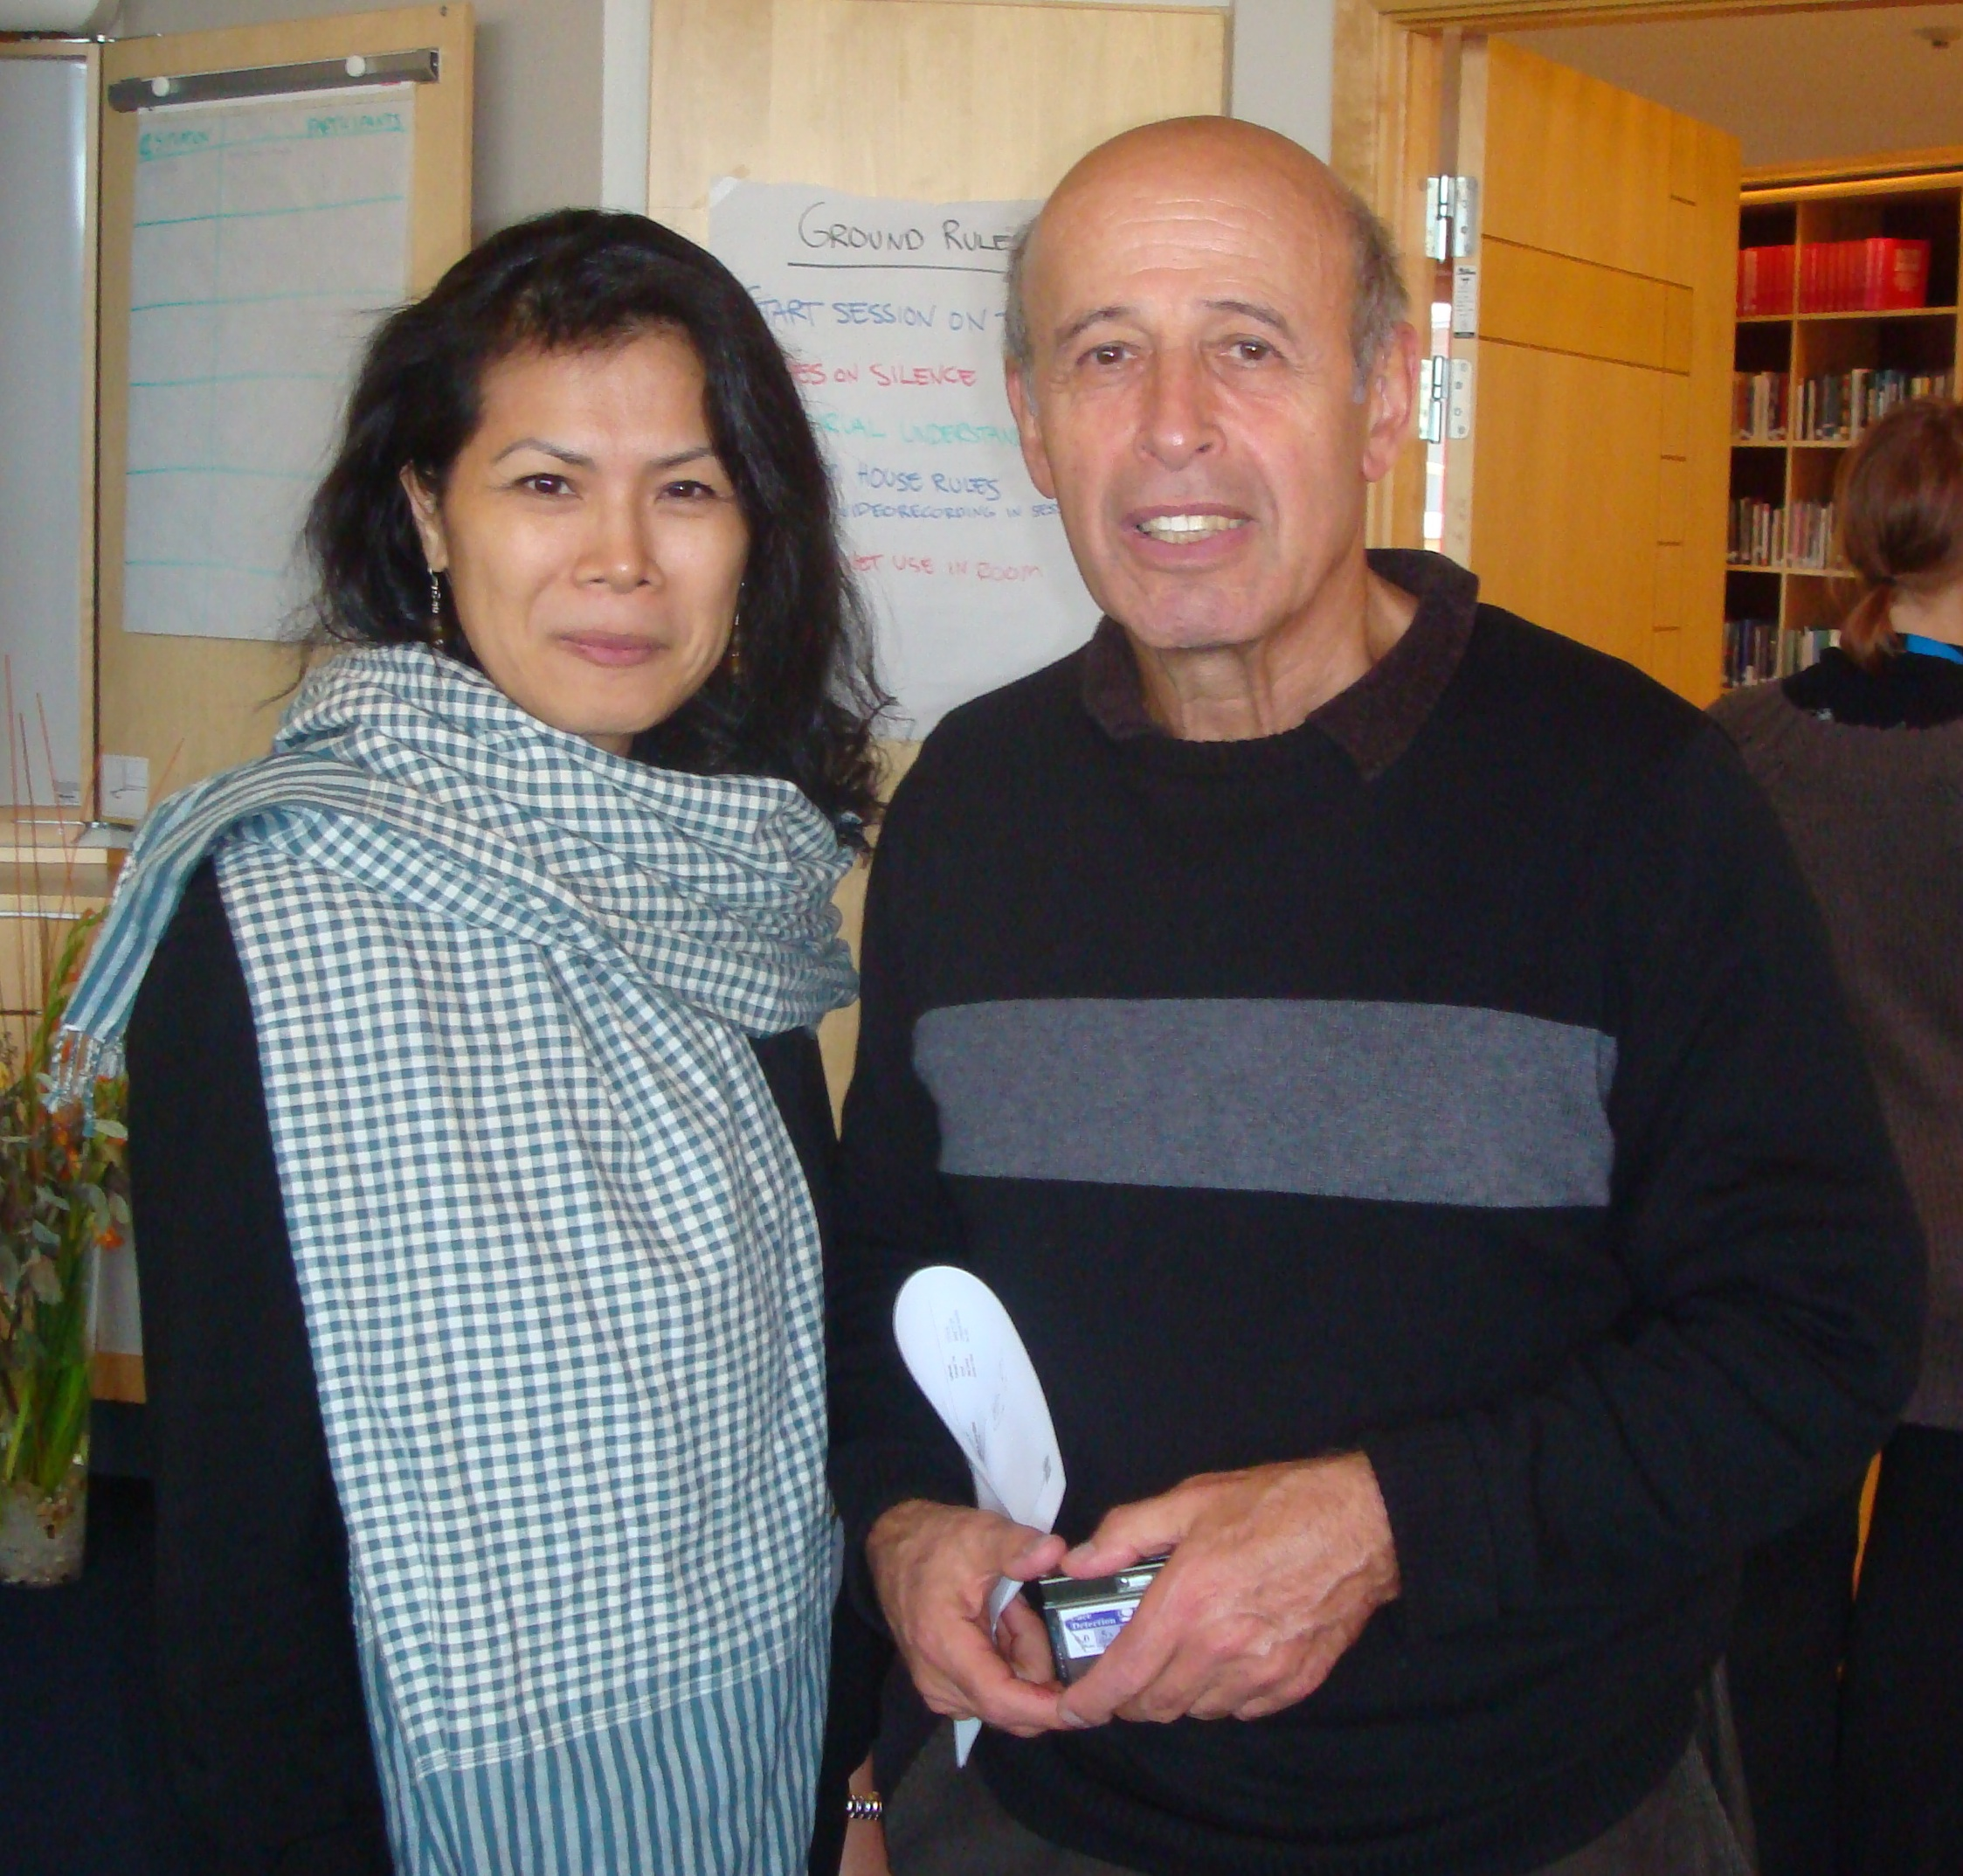 Theary Seng and Ervin Staub, Sando, Sweden Oct. 2010